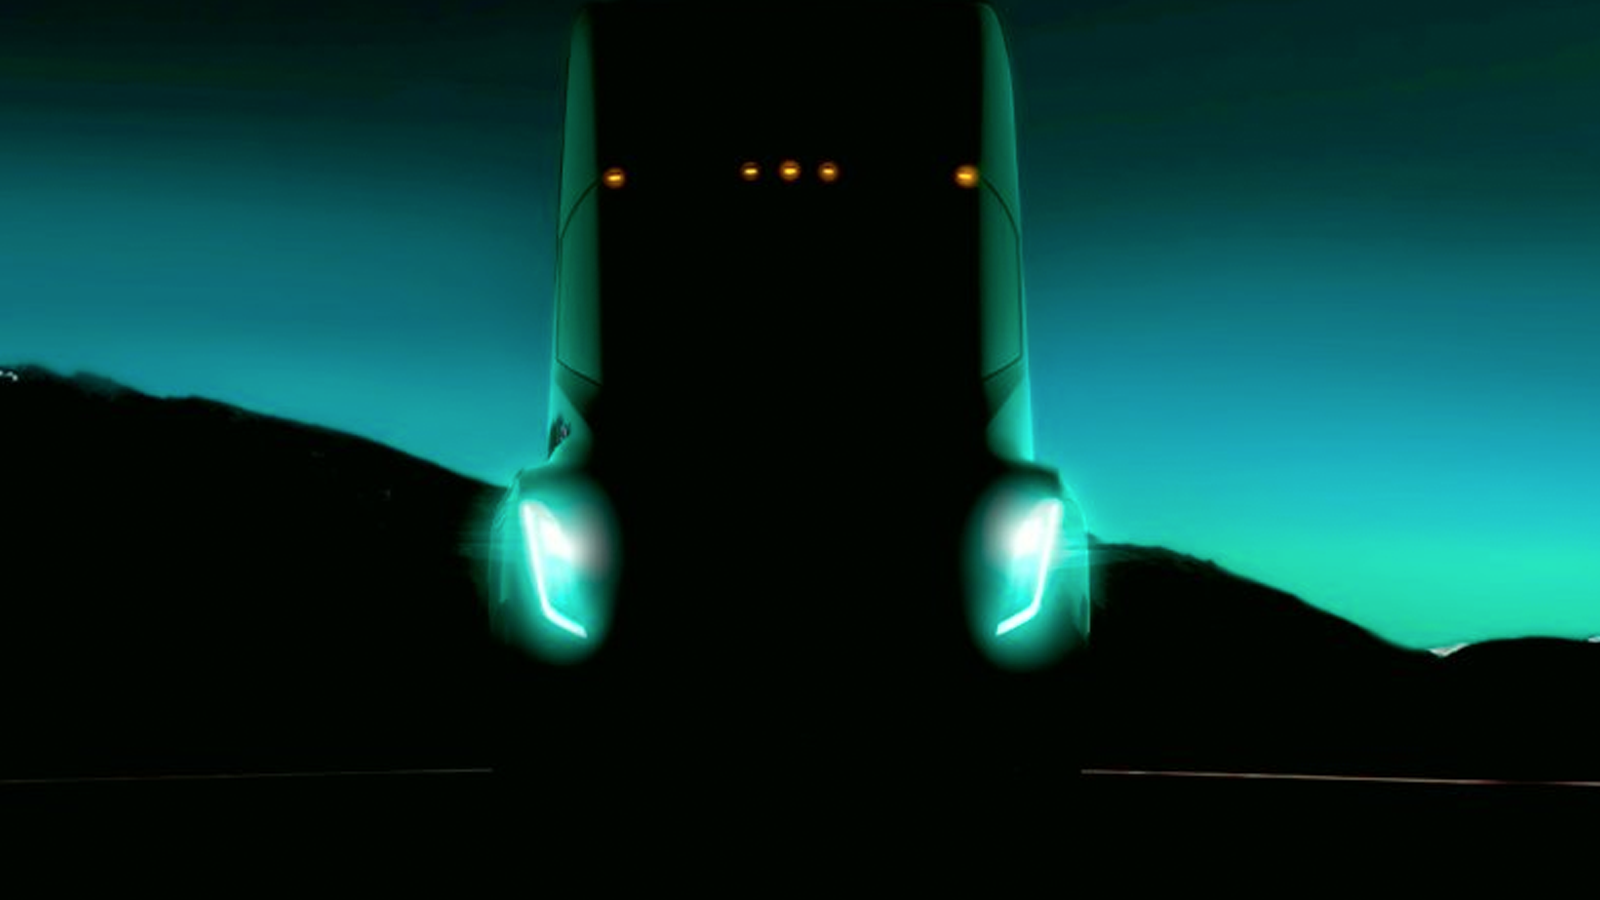 Tesla plans to unveil self-driving electric trucks in September